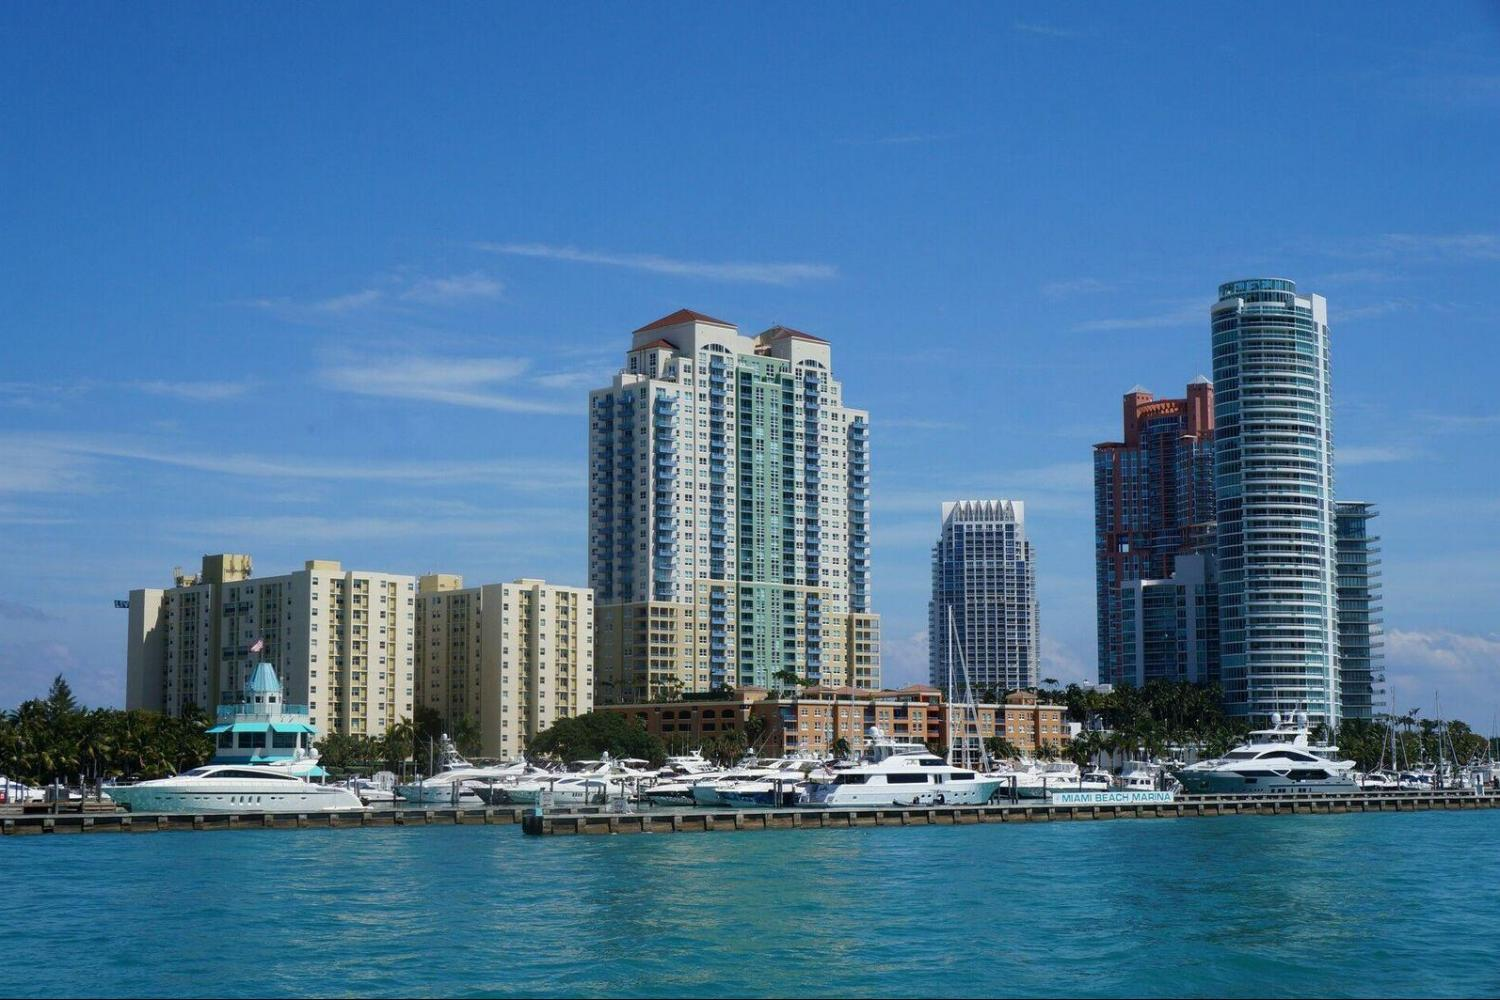 Downtown Miami Skyline view from the Island Queen Boat Cruise